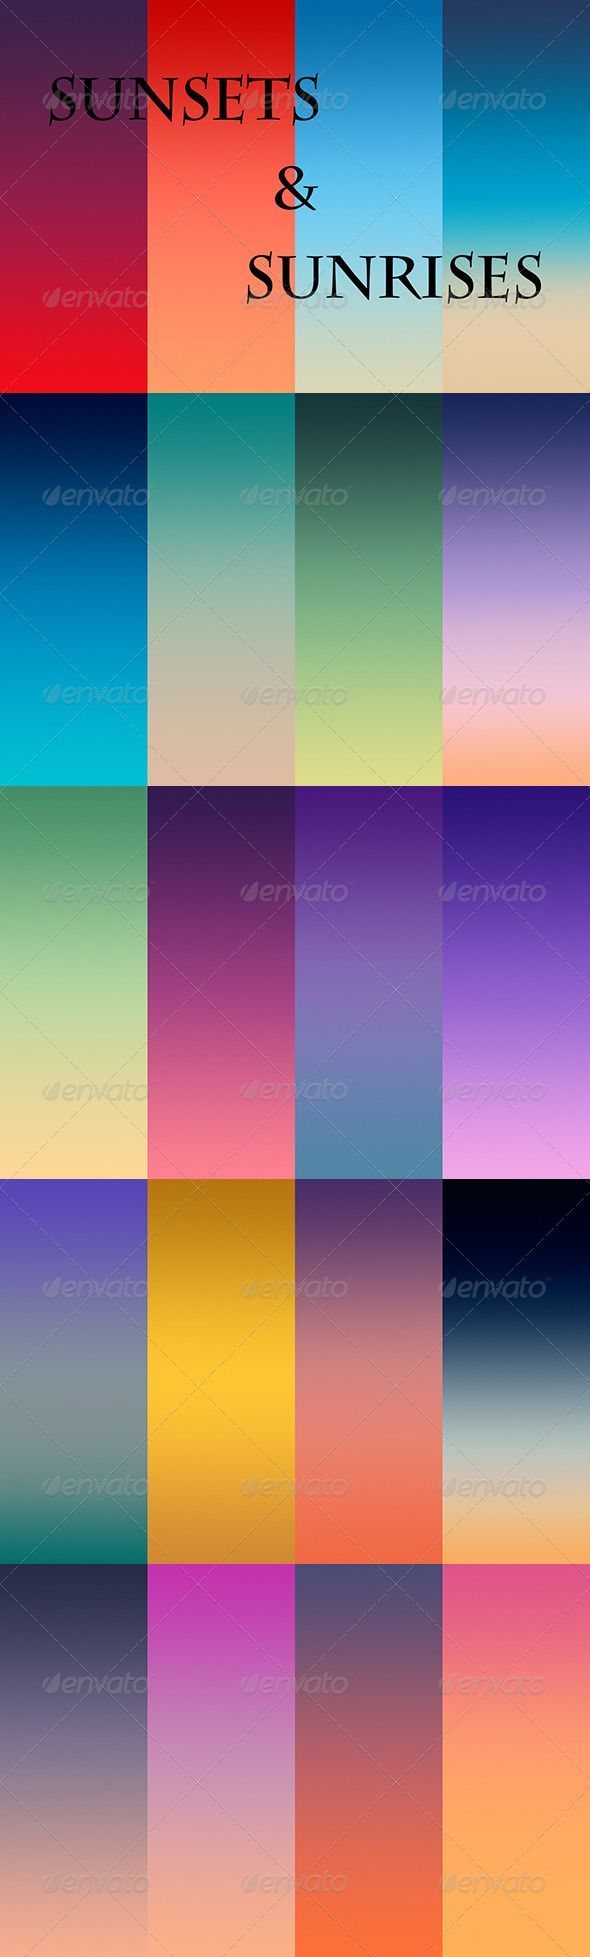 DOWNLOAD :: https://sourcecodes.pro/article-itmid-1006838044i.html ... Sunsets And Sunrises ...  addon, awesome, blue, clean, colorful, gradient, grd, nature, ocean, orange, photoshop, pink, stunning, sunrise, sunset, water, yellow  ... Templates, Textures, Stock Photography, Creative Design, Infographics, Vectors, Print, Webdesign, Web Elements, Graphics, Wordpress Themes, eCommerce ... DOWNLOAD :: https://sourcecodes.pro/article-itmid-1006838044i.html